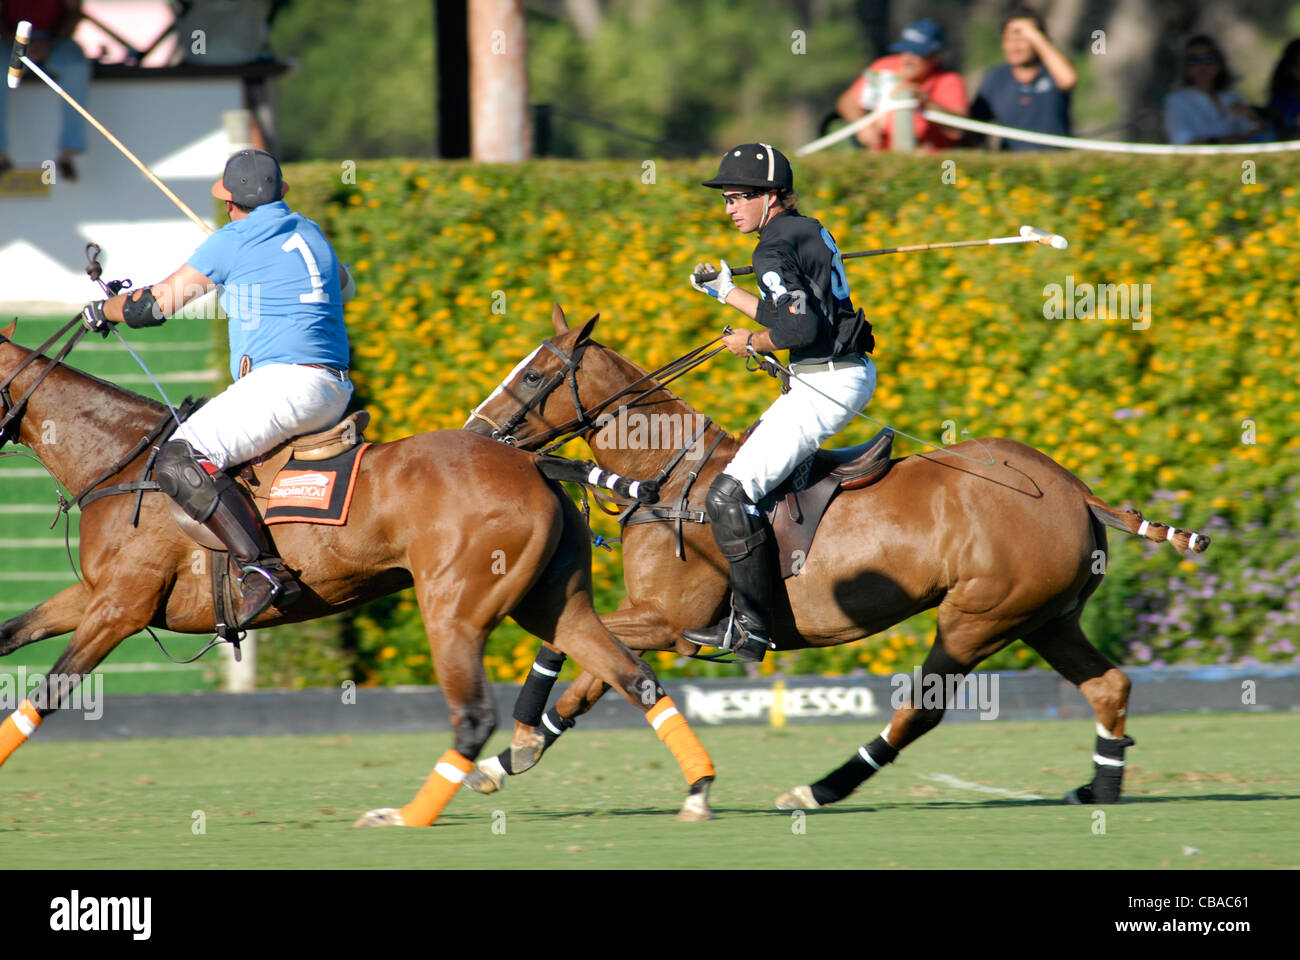 2 polo players in action during match - Stock Image